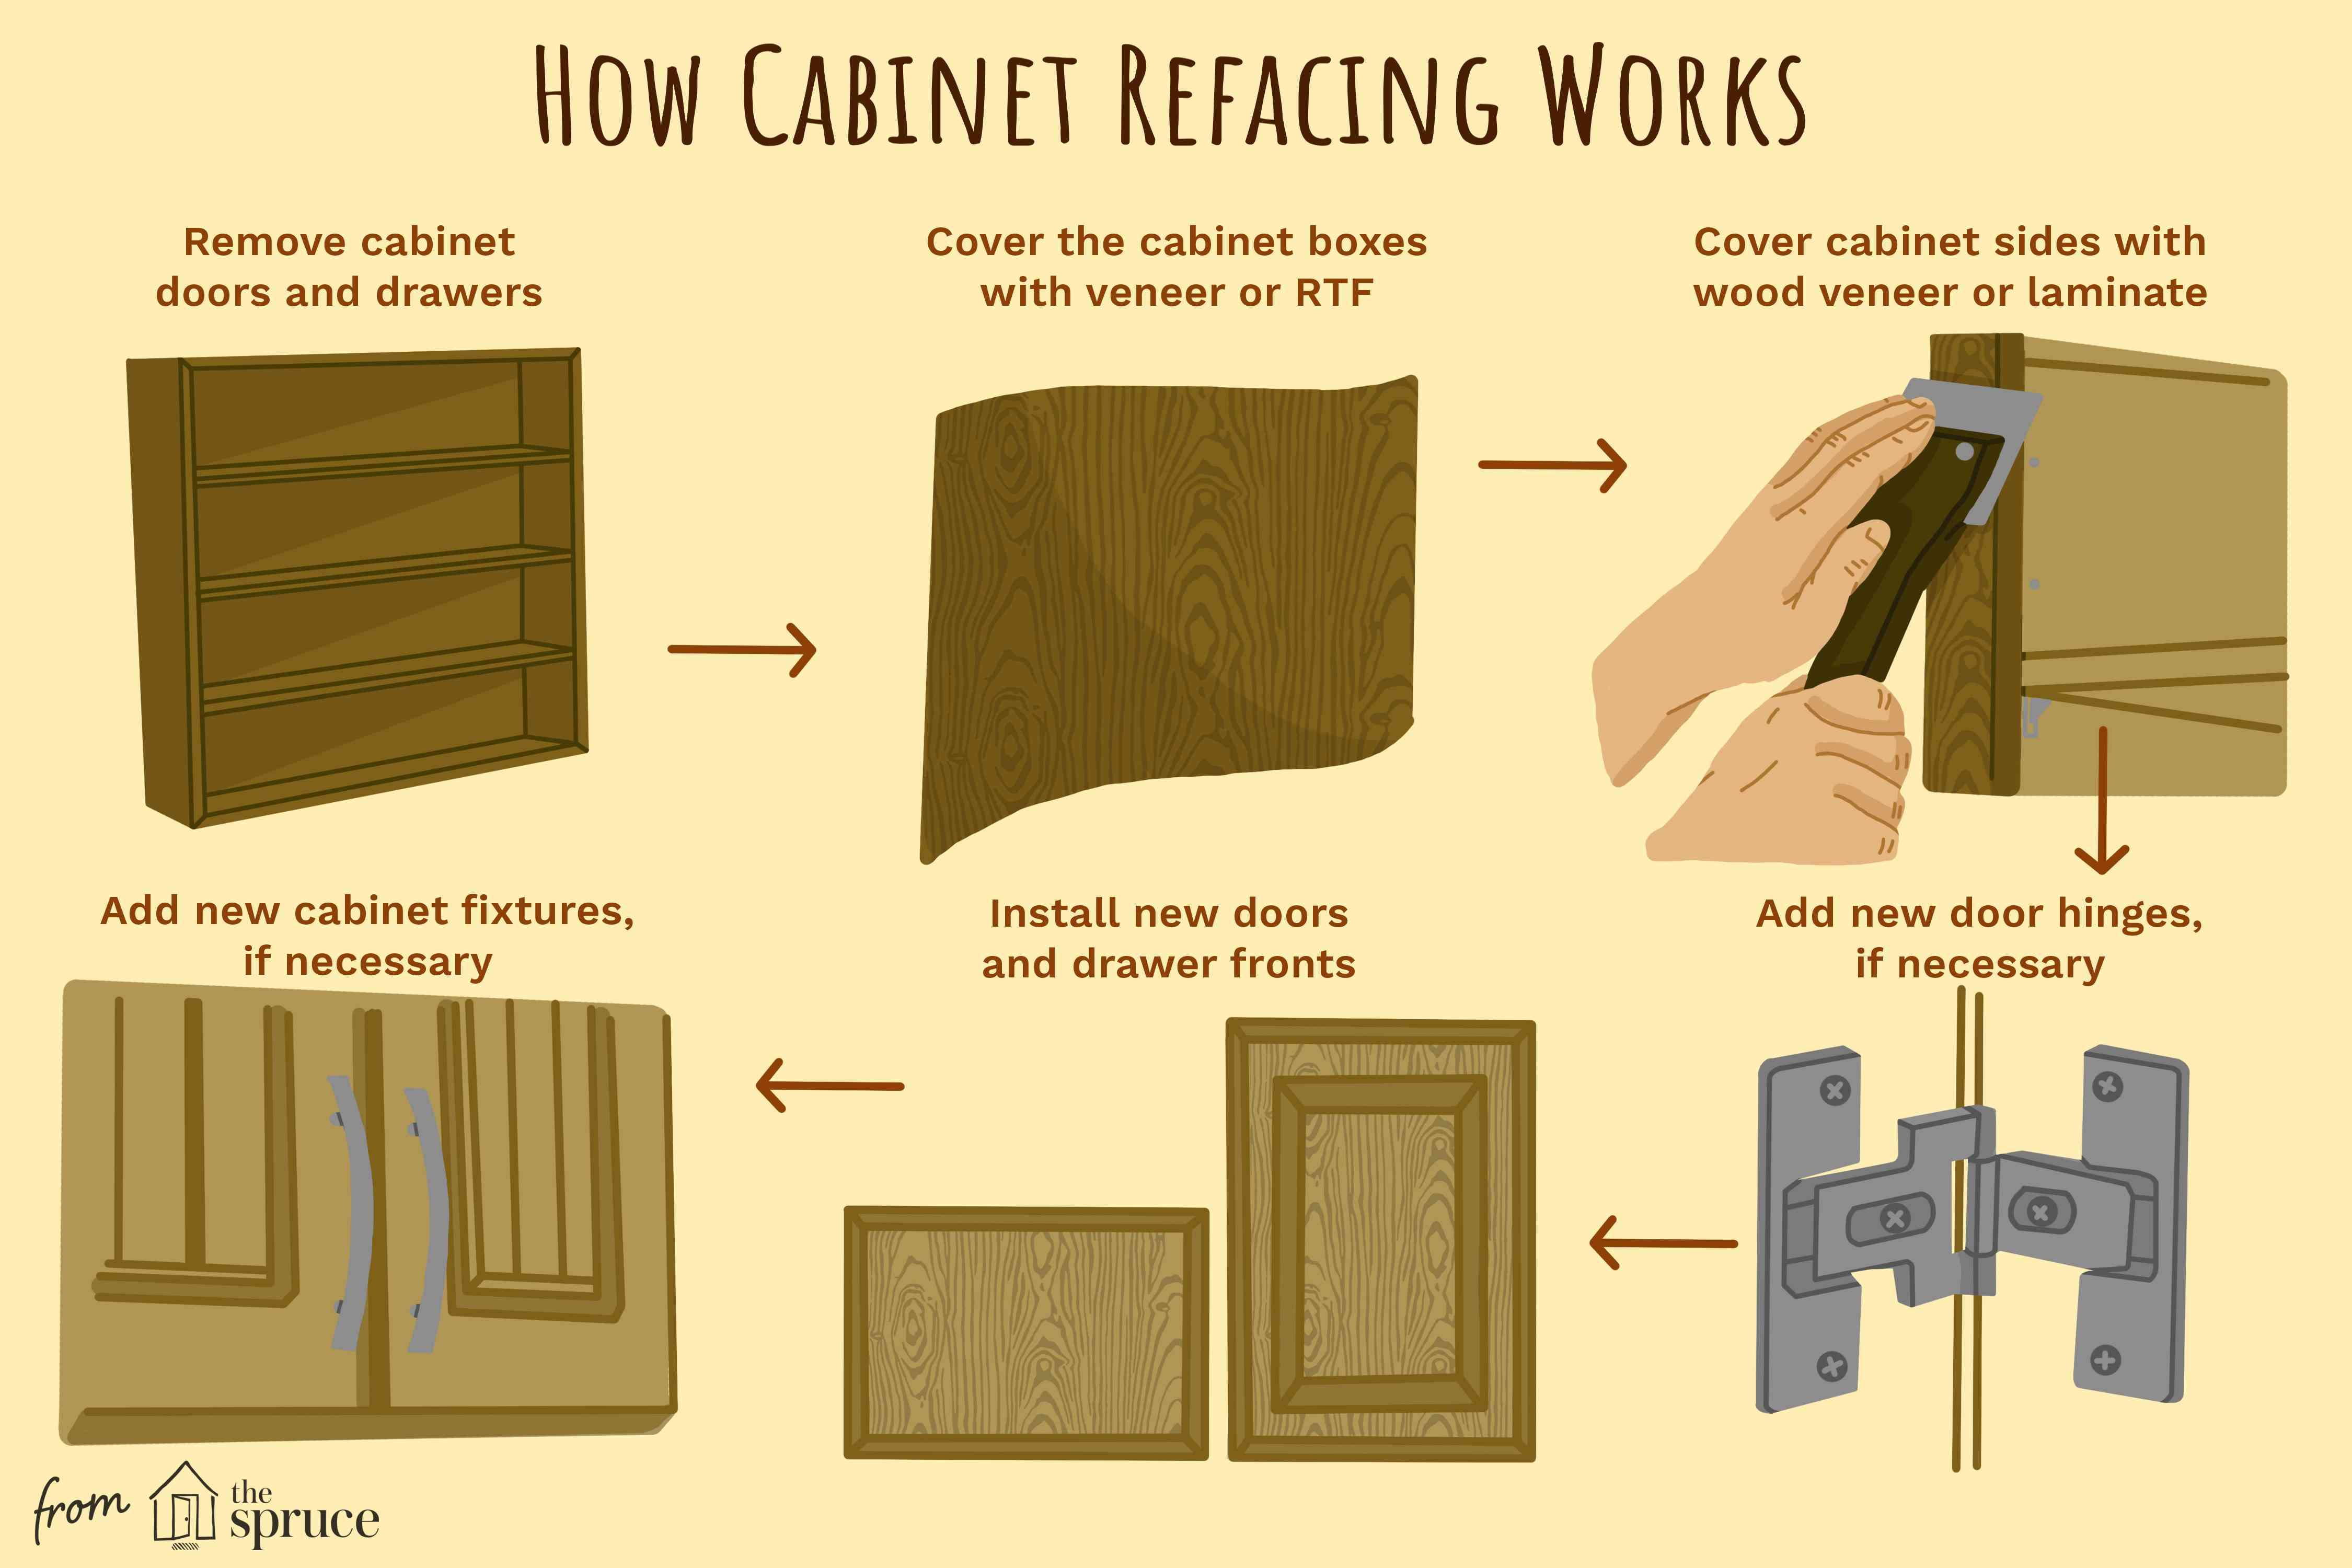 Info graphic showing steps and how cabinet refacing works